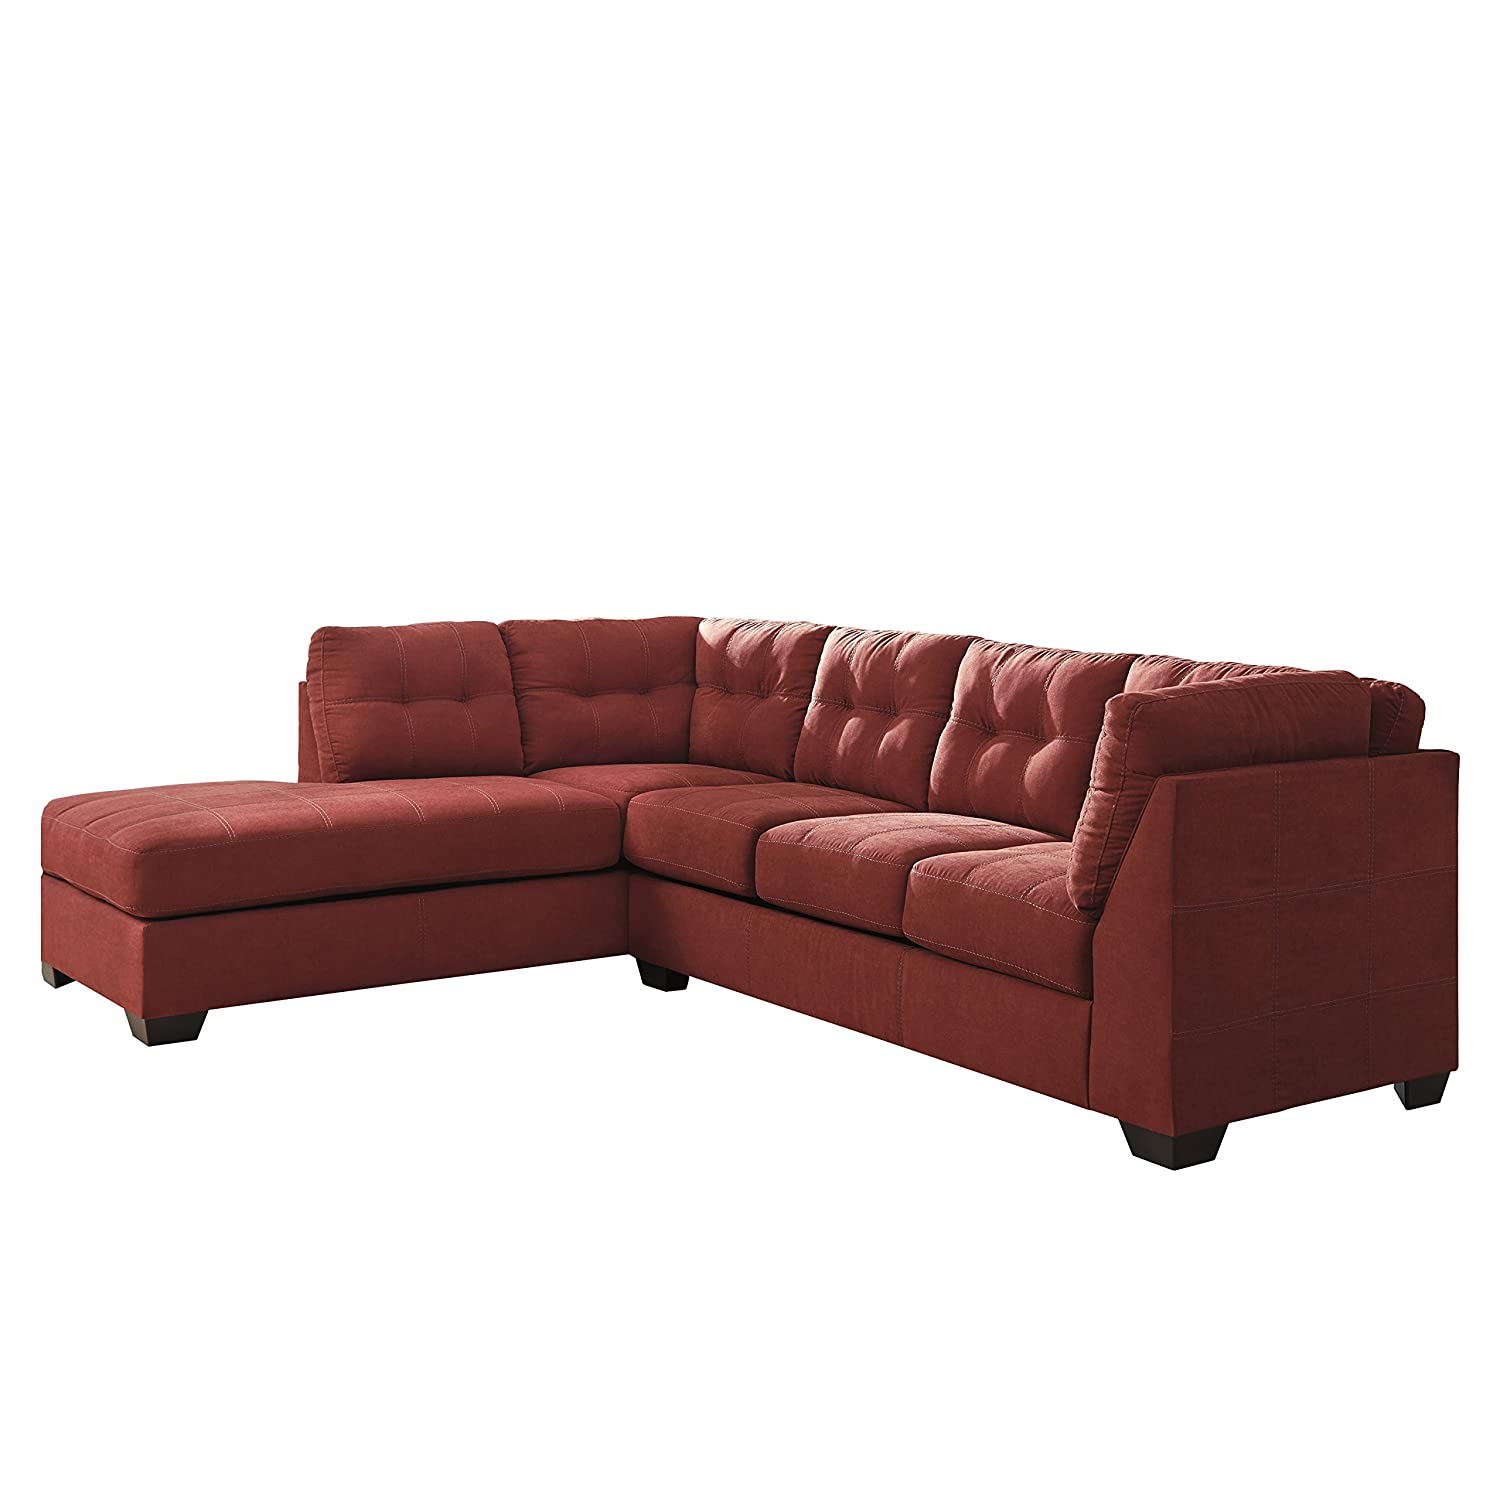 Benchcraft furniture 4piece sectional w armless sofa for Berkline callisburgh sofa chaise